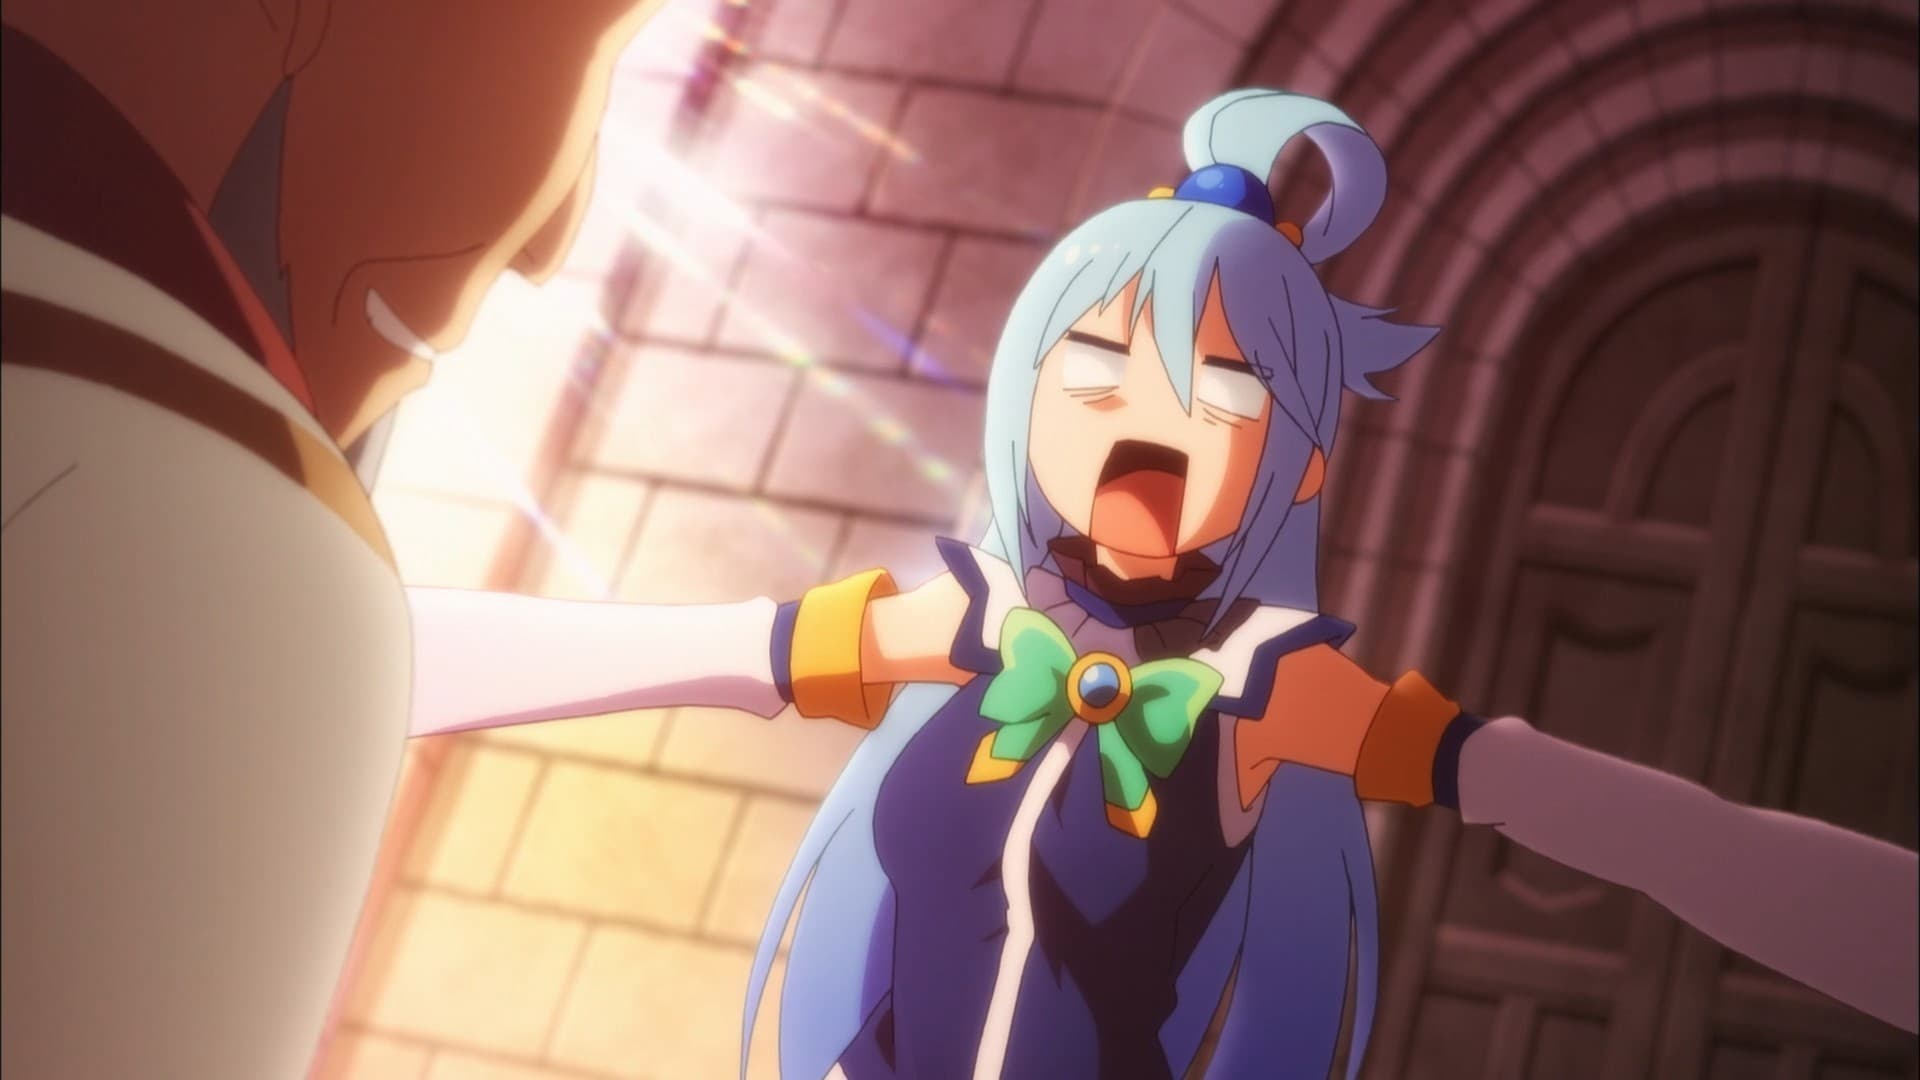 Image konosuba-gods-blessing-on-this-wonderful-world-eng-dub-74-episode-7-season-1.jpg